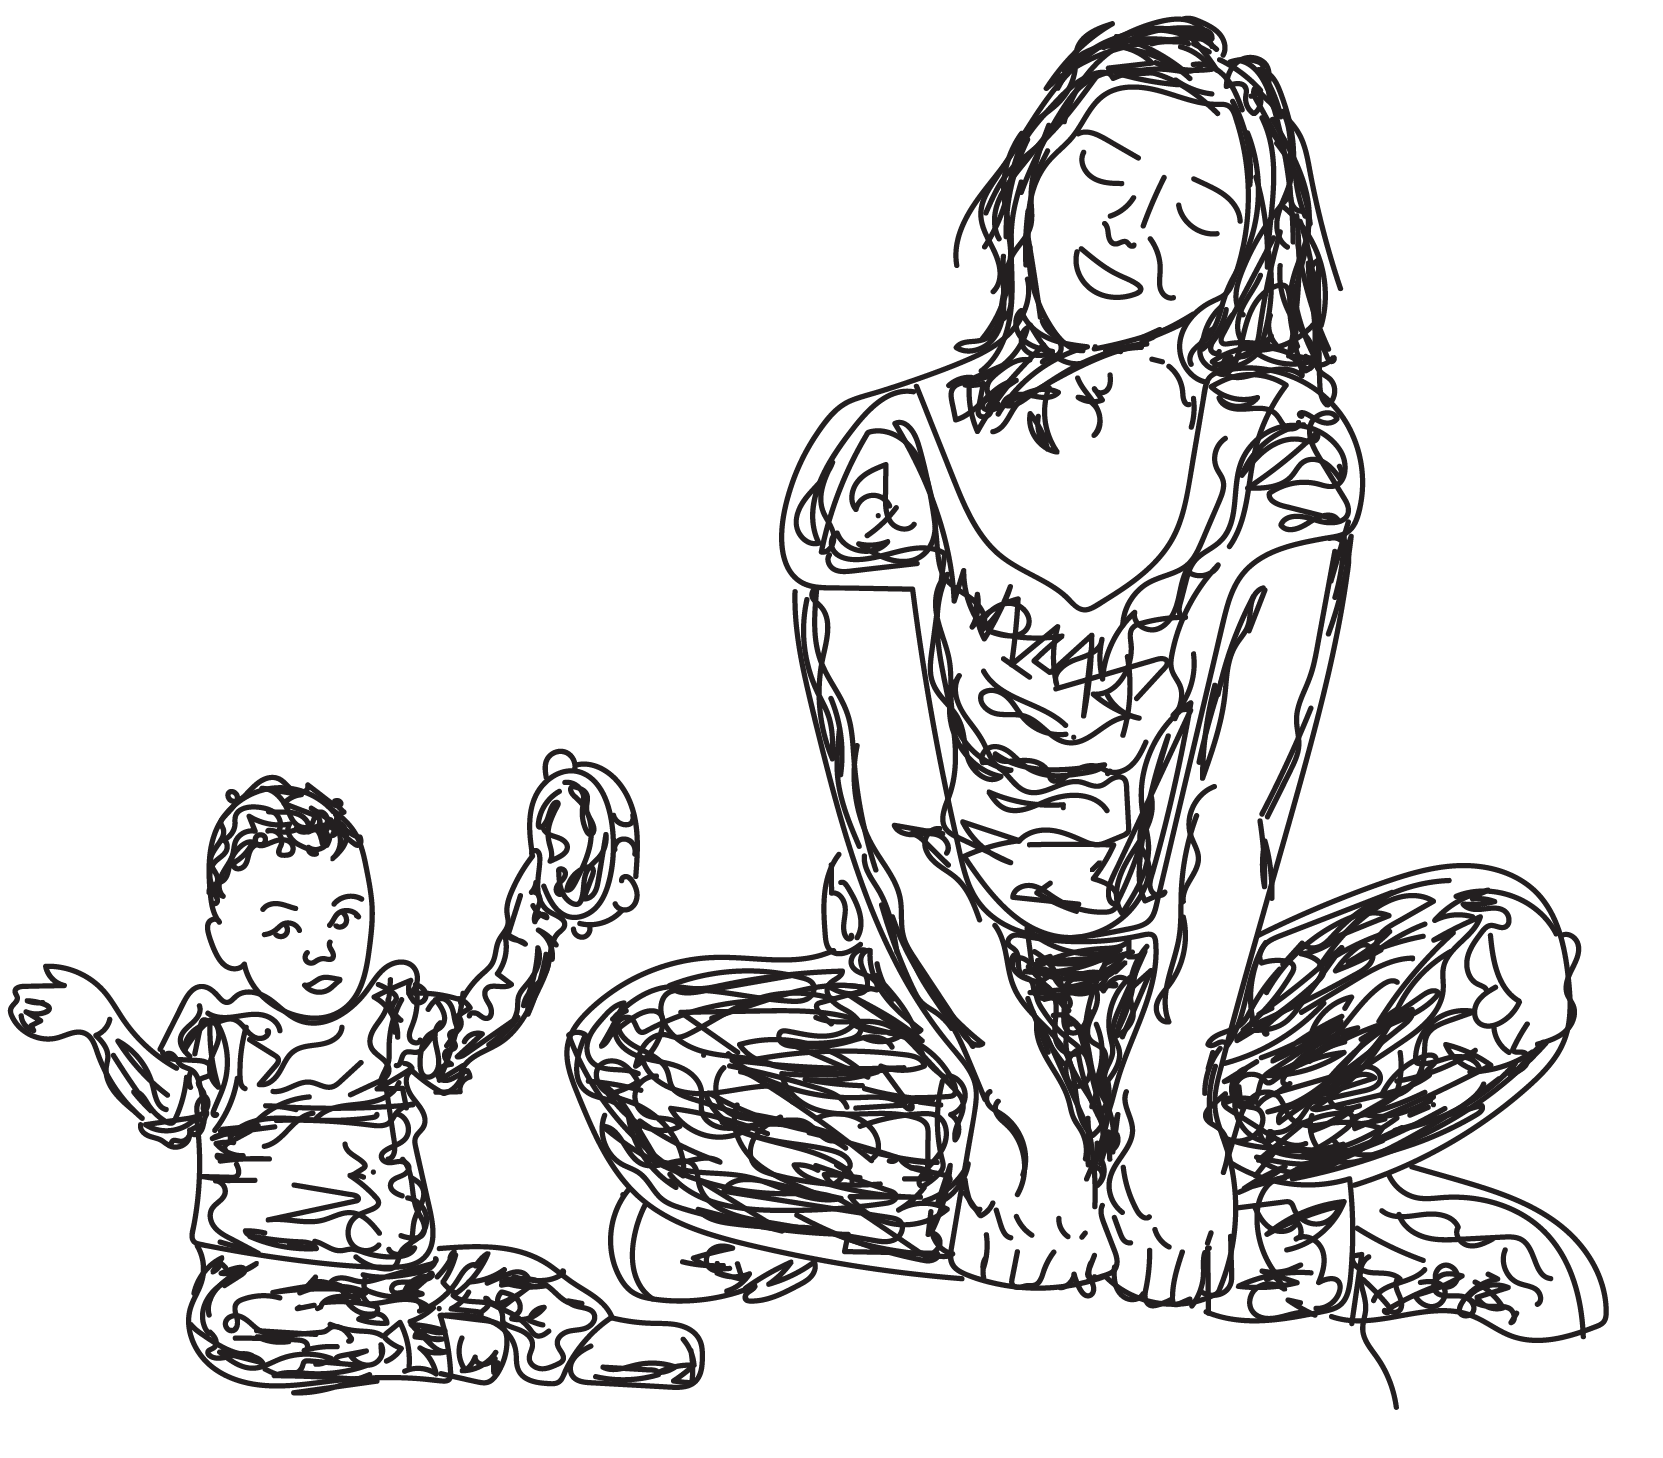 sketch of mother and child